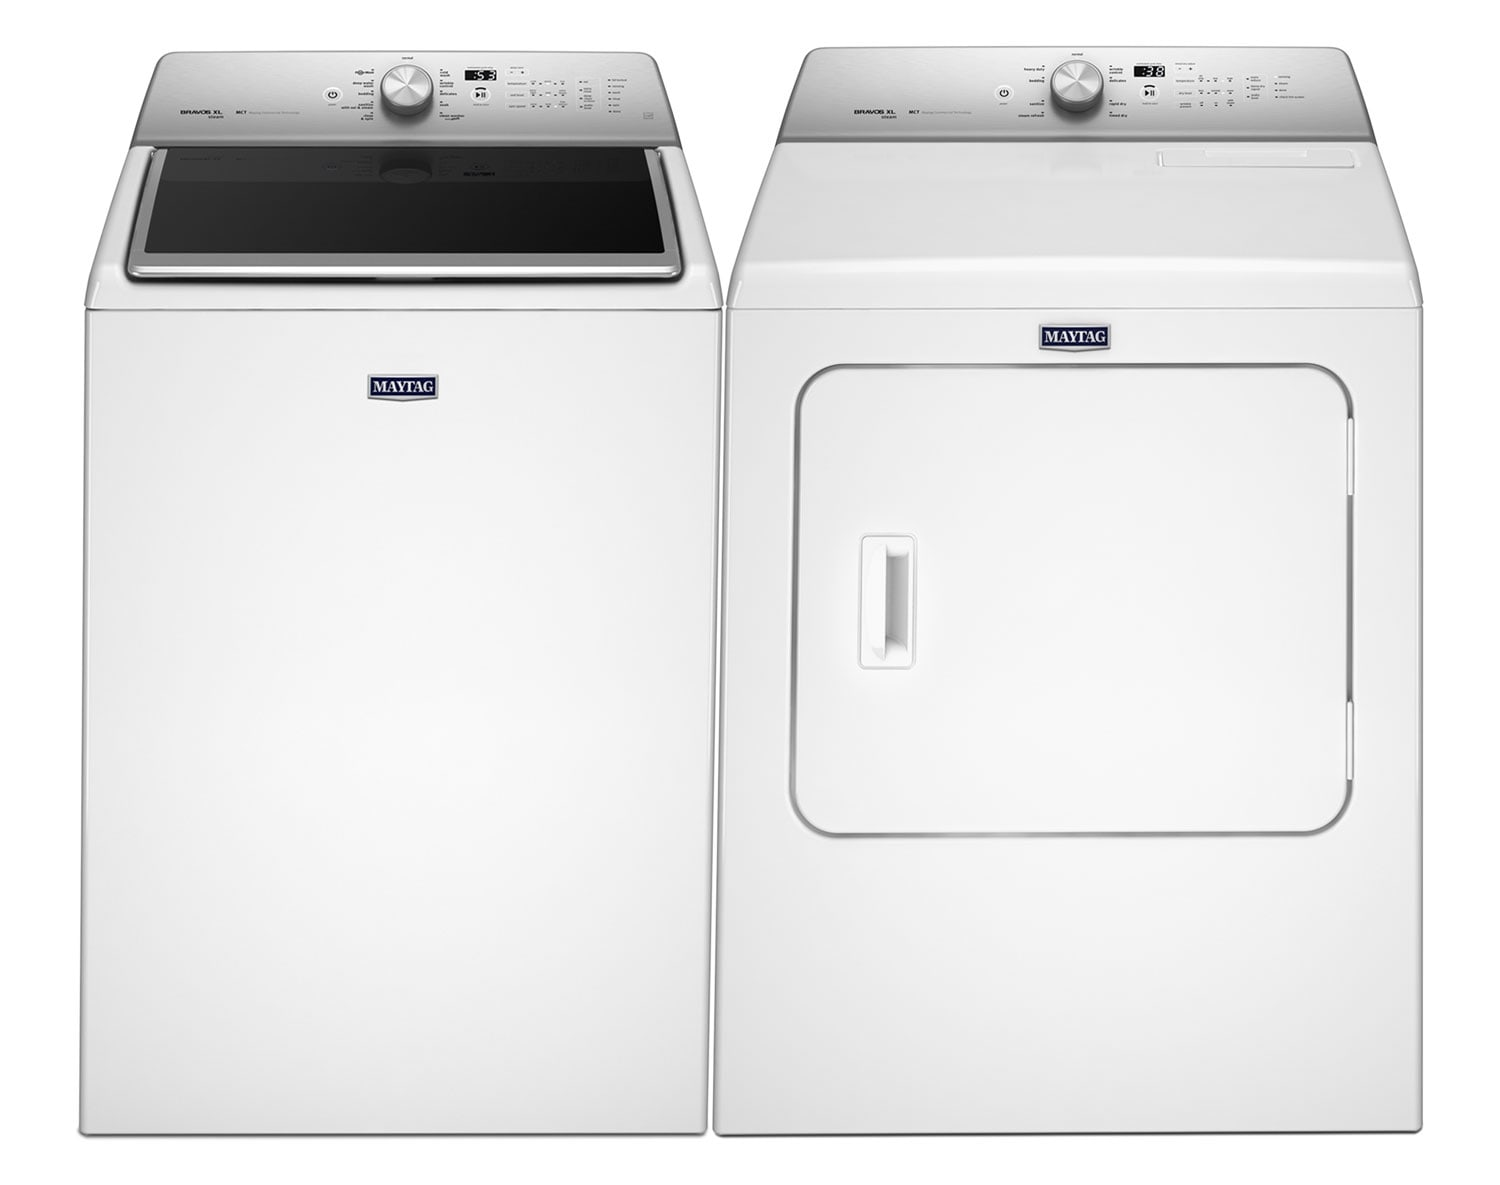 Maytag® 6.1 Cu. Ft. Top-Load Washing Machine and 7.0 Cu. Ft. Steam Electric Dryer - White